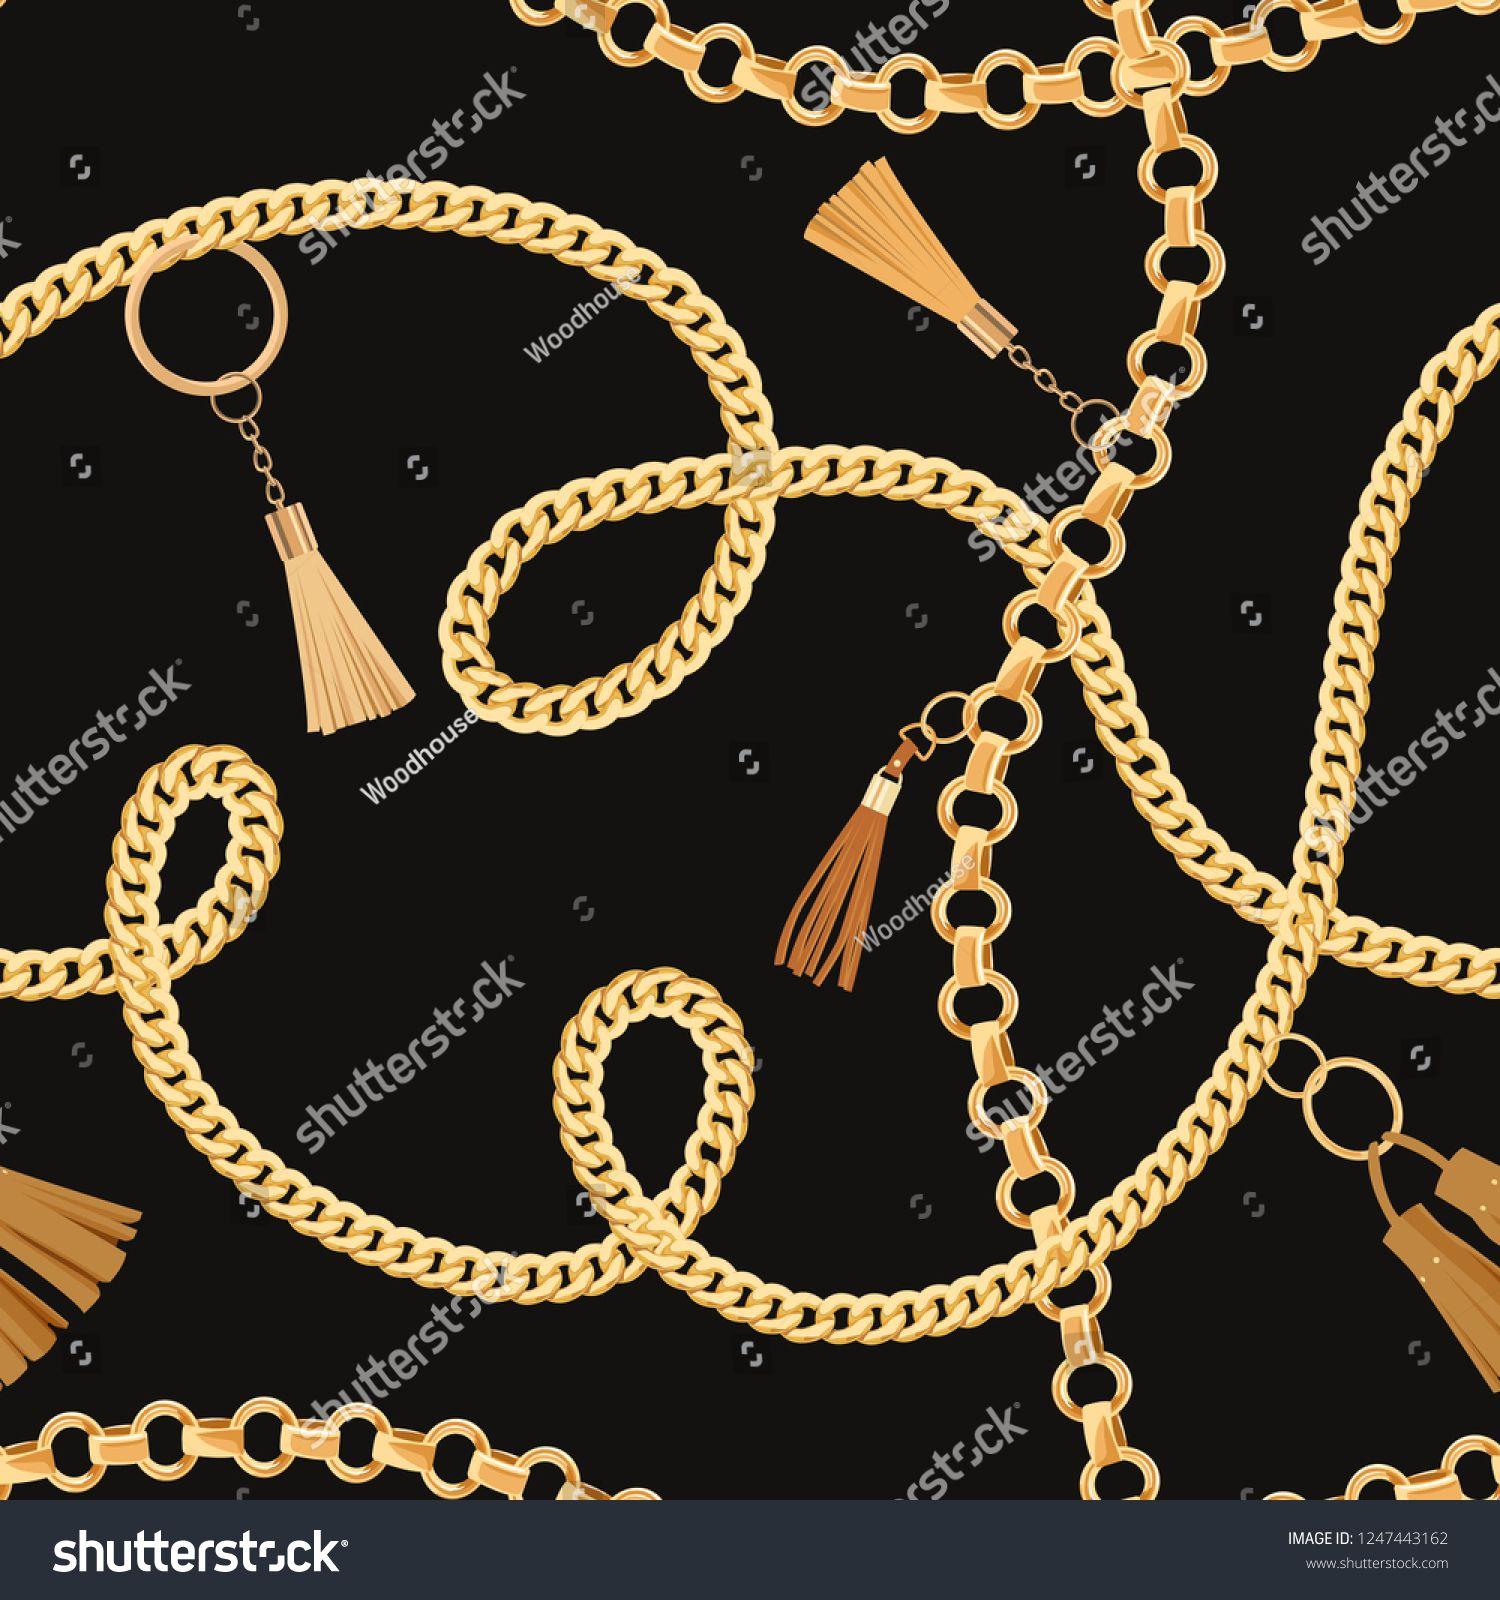 Fashion Seamless Pattern With Golden Chains Fabric Design Background With Chain Metallic Accessories And Jewel Map Design Background Design Metal Accessories